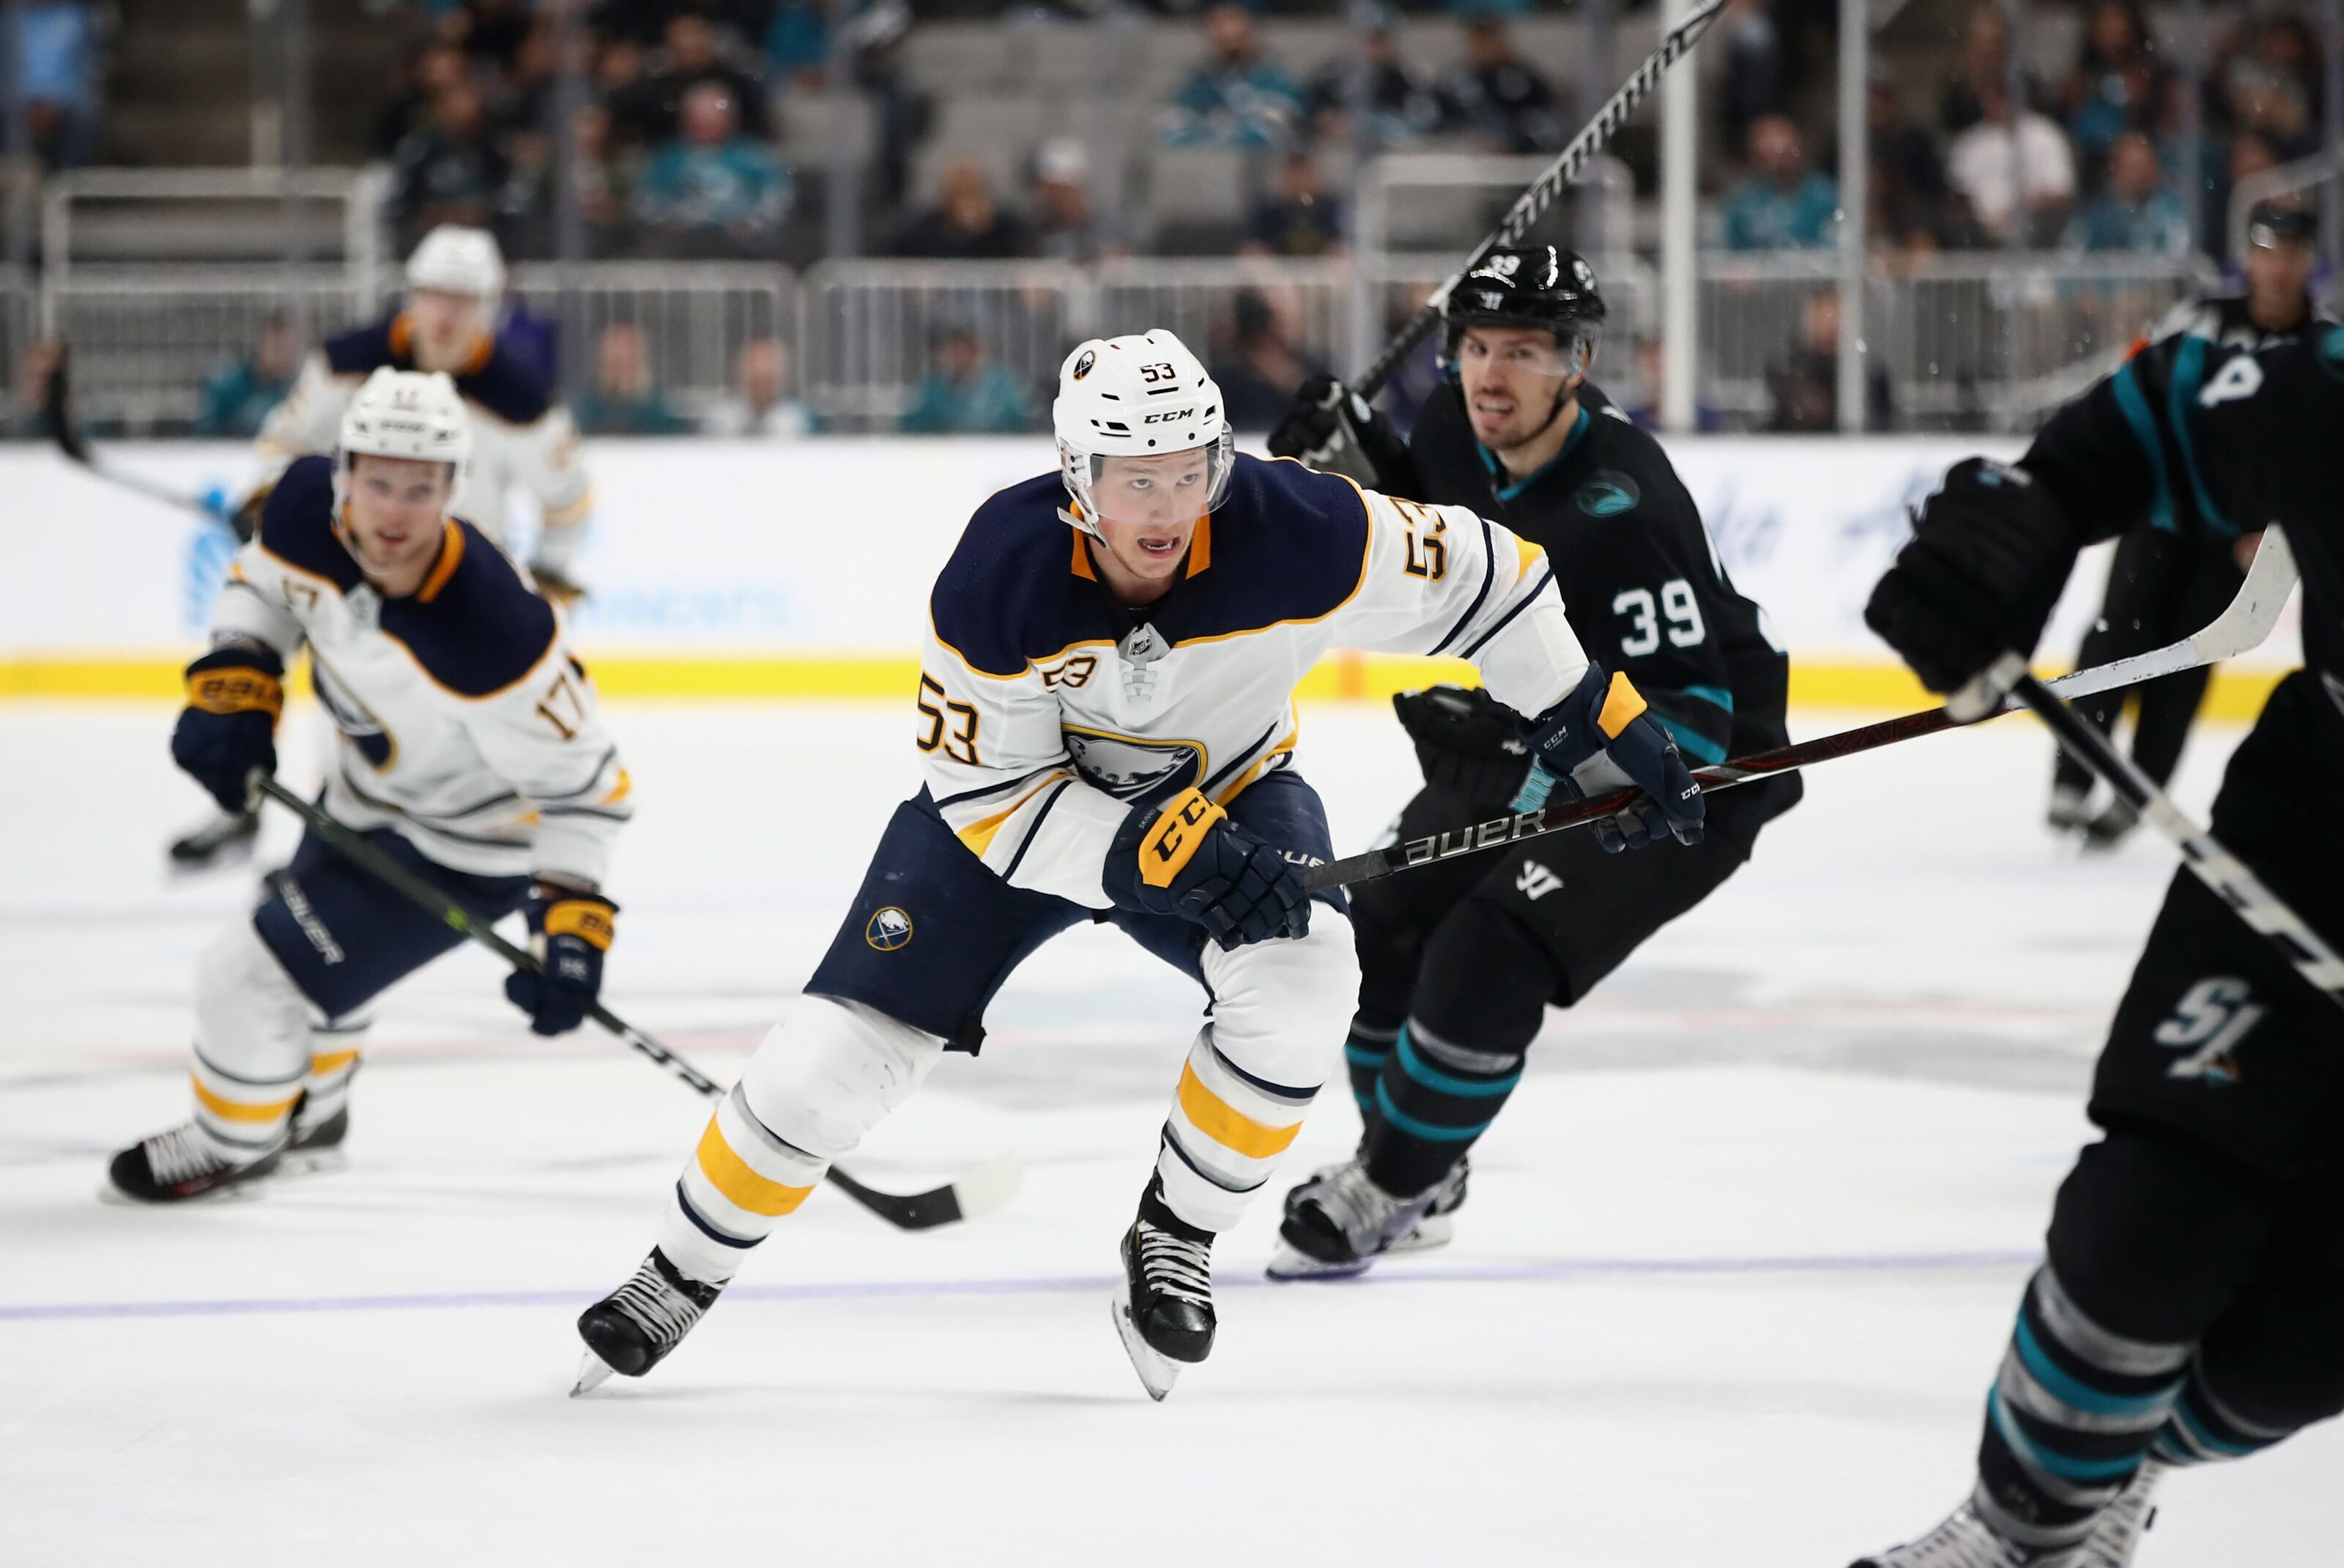 Buffalo Sabres vs. San Jose Sharks: Date, Time, TV, Streaming, More